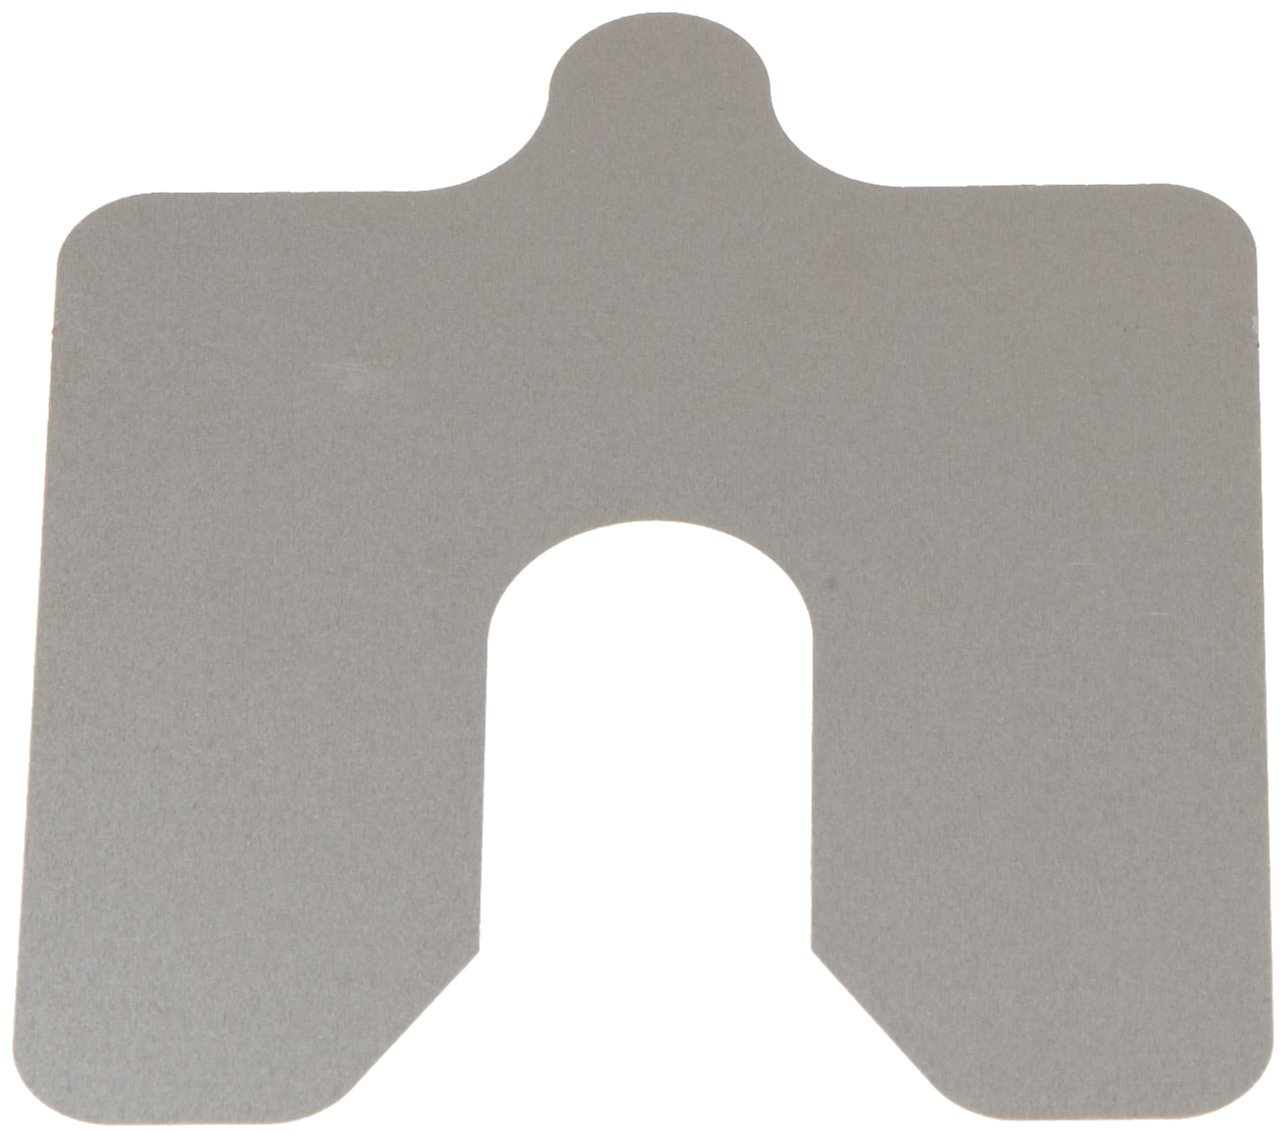 302 Stainless Steel Slotted Shim, #2B Smooth